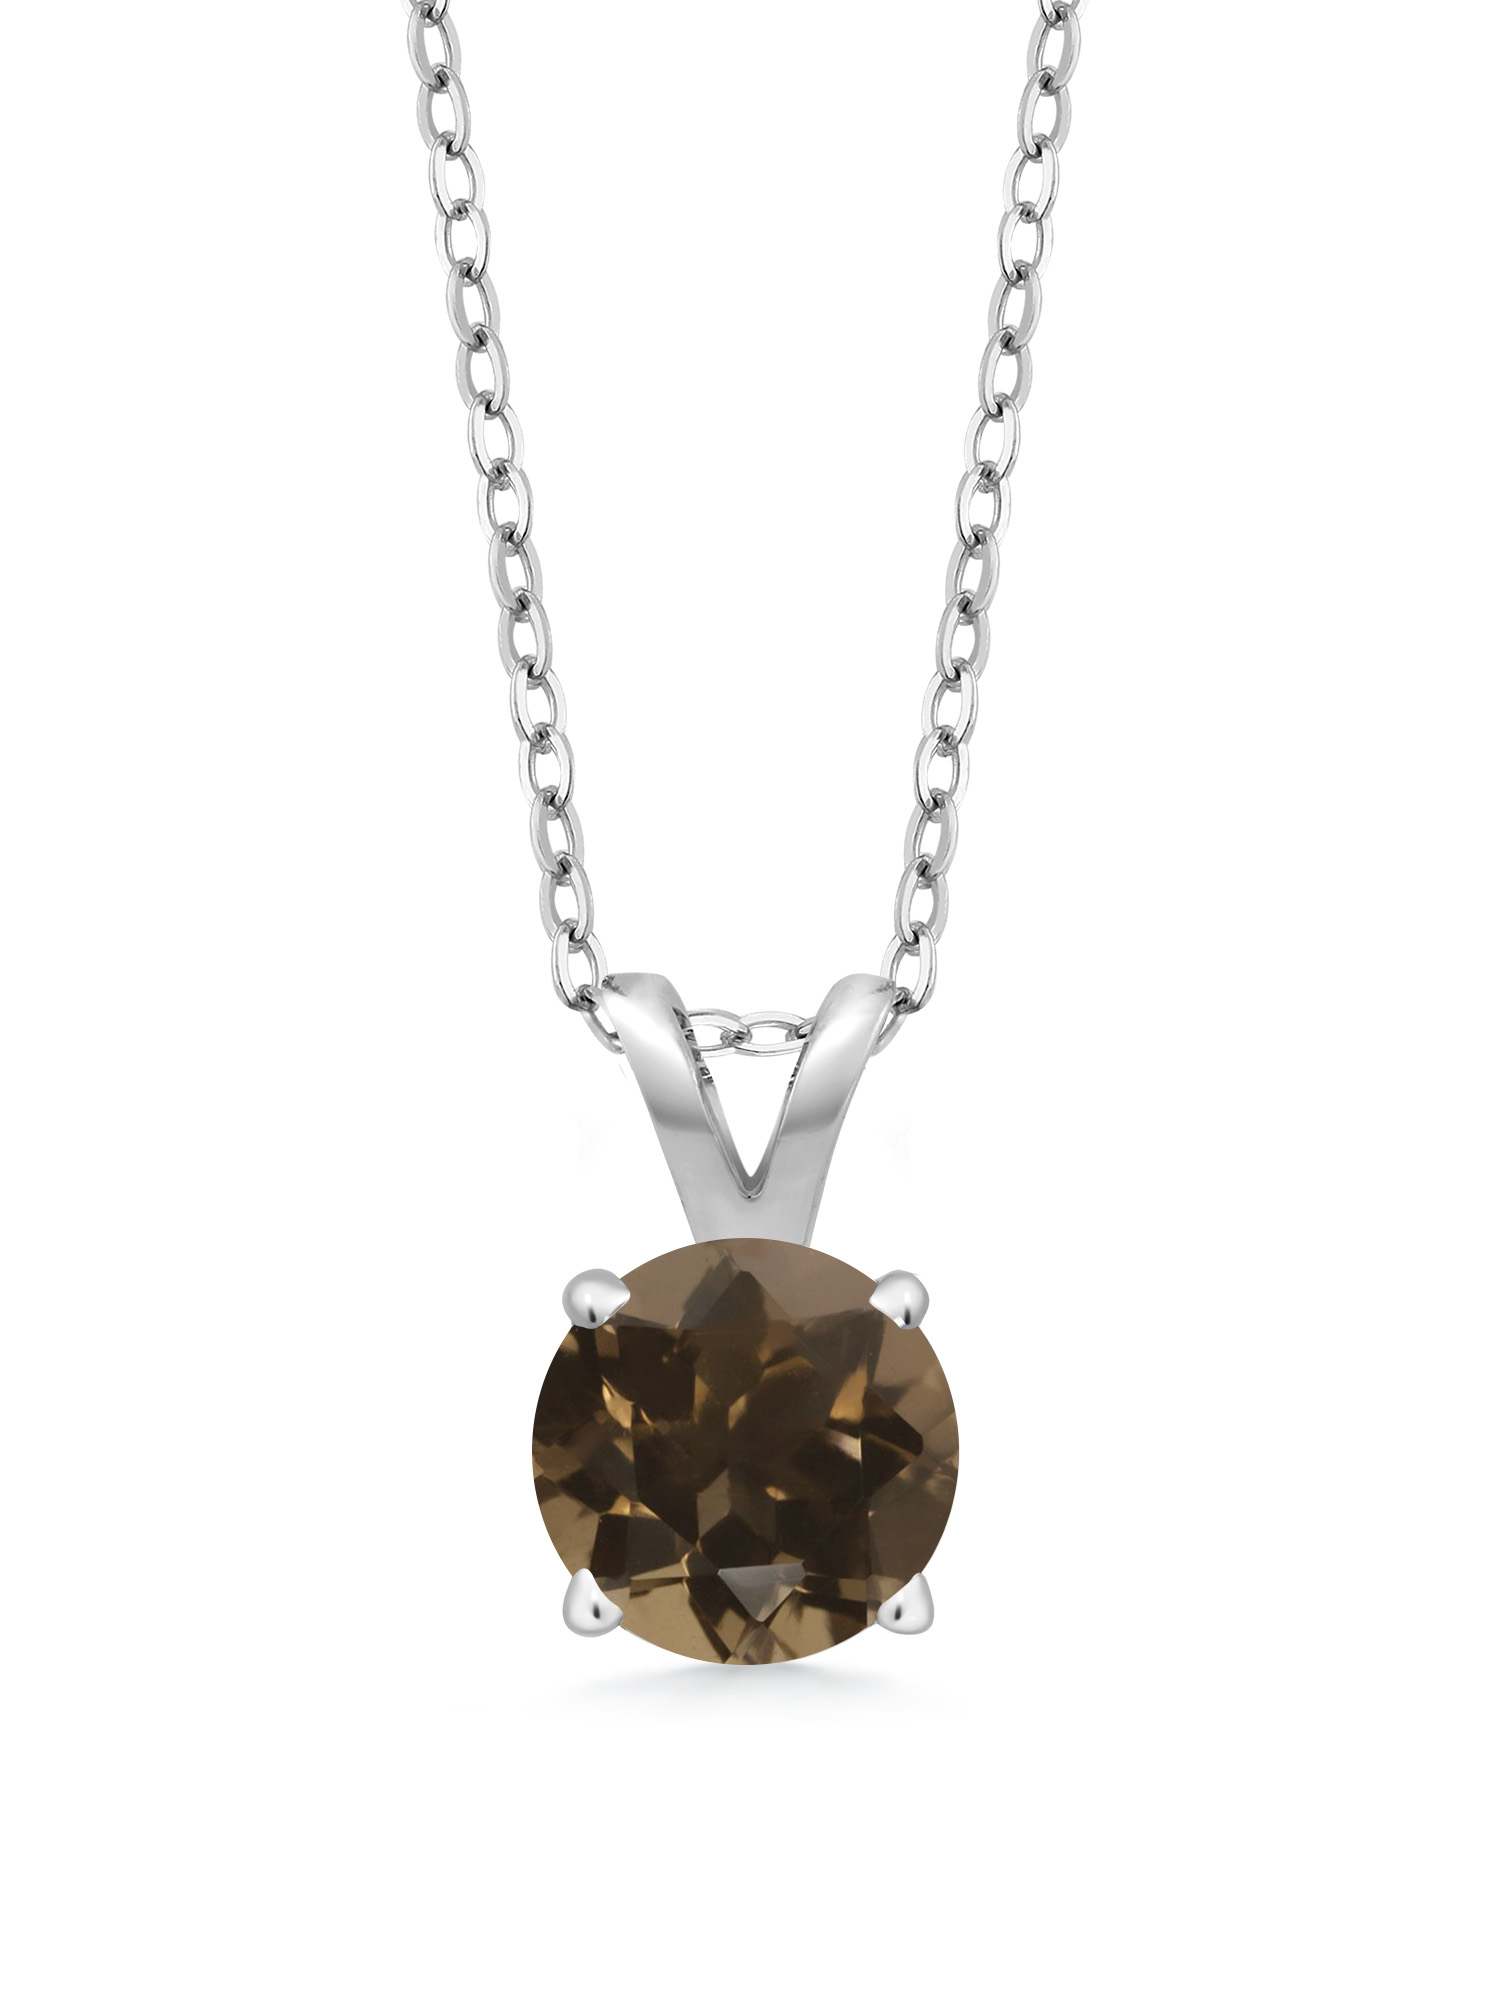 0.46 Ct Round Brown Smoky Quartz 925 Sterling Silver Pendant With Chain